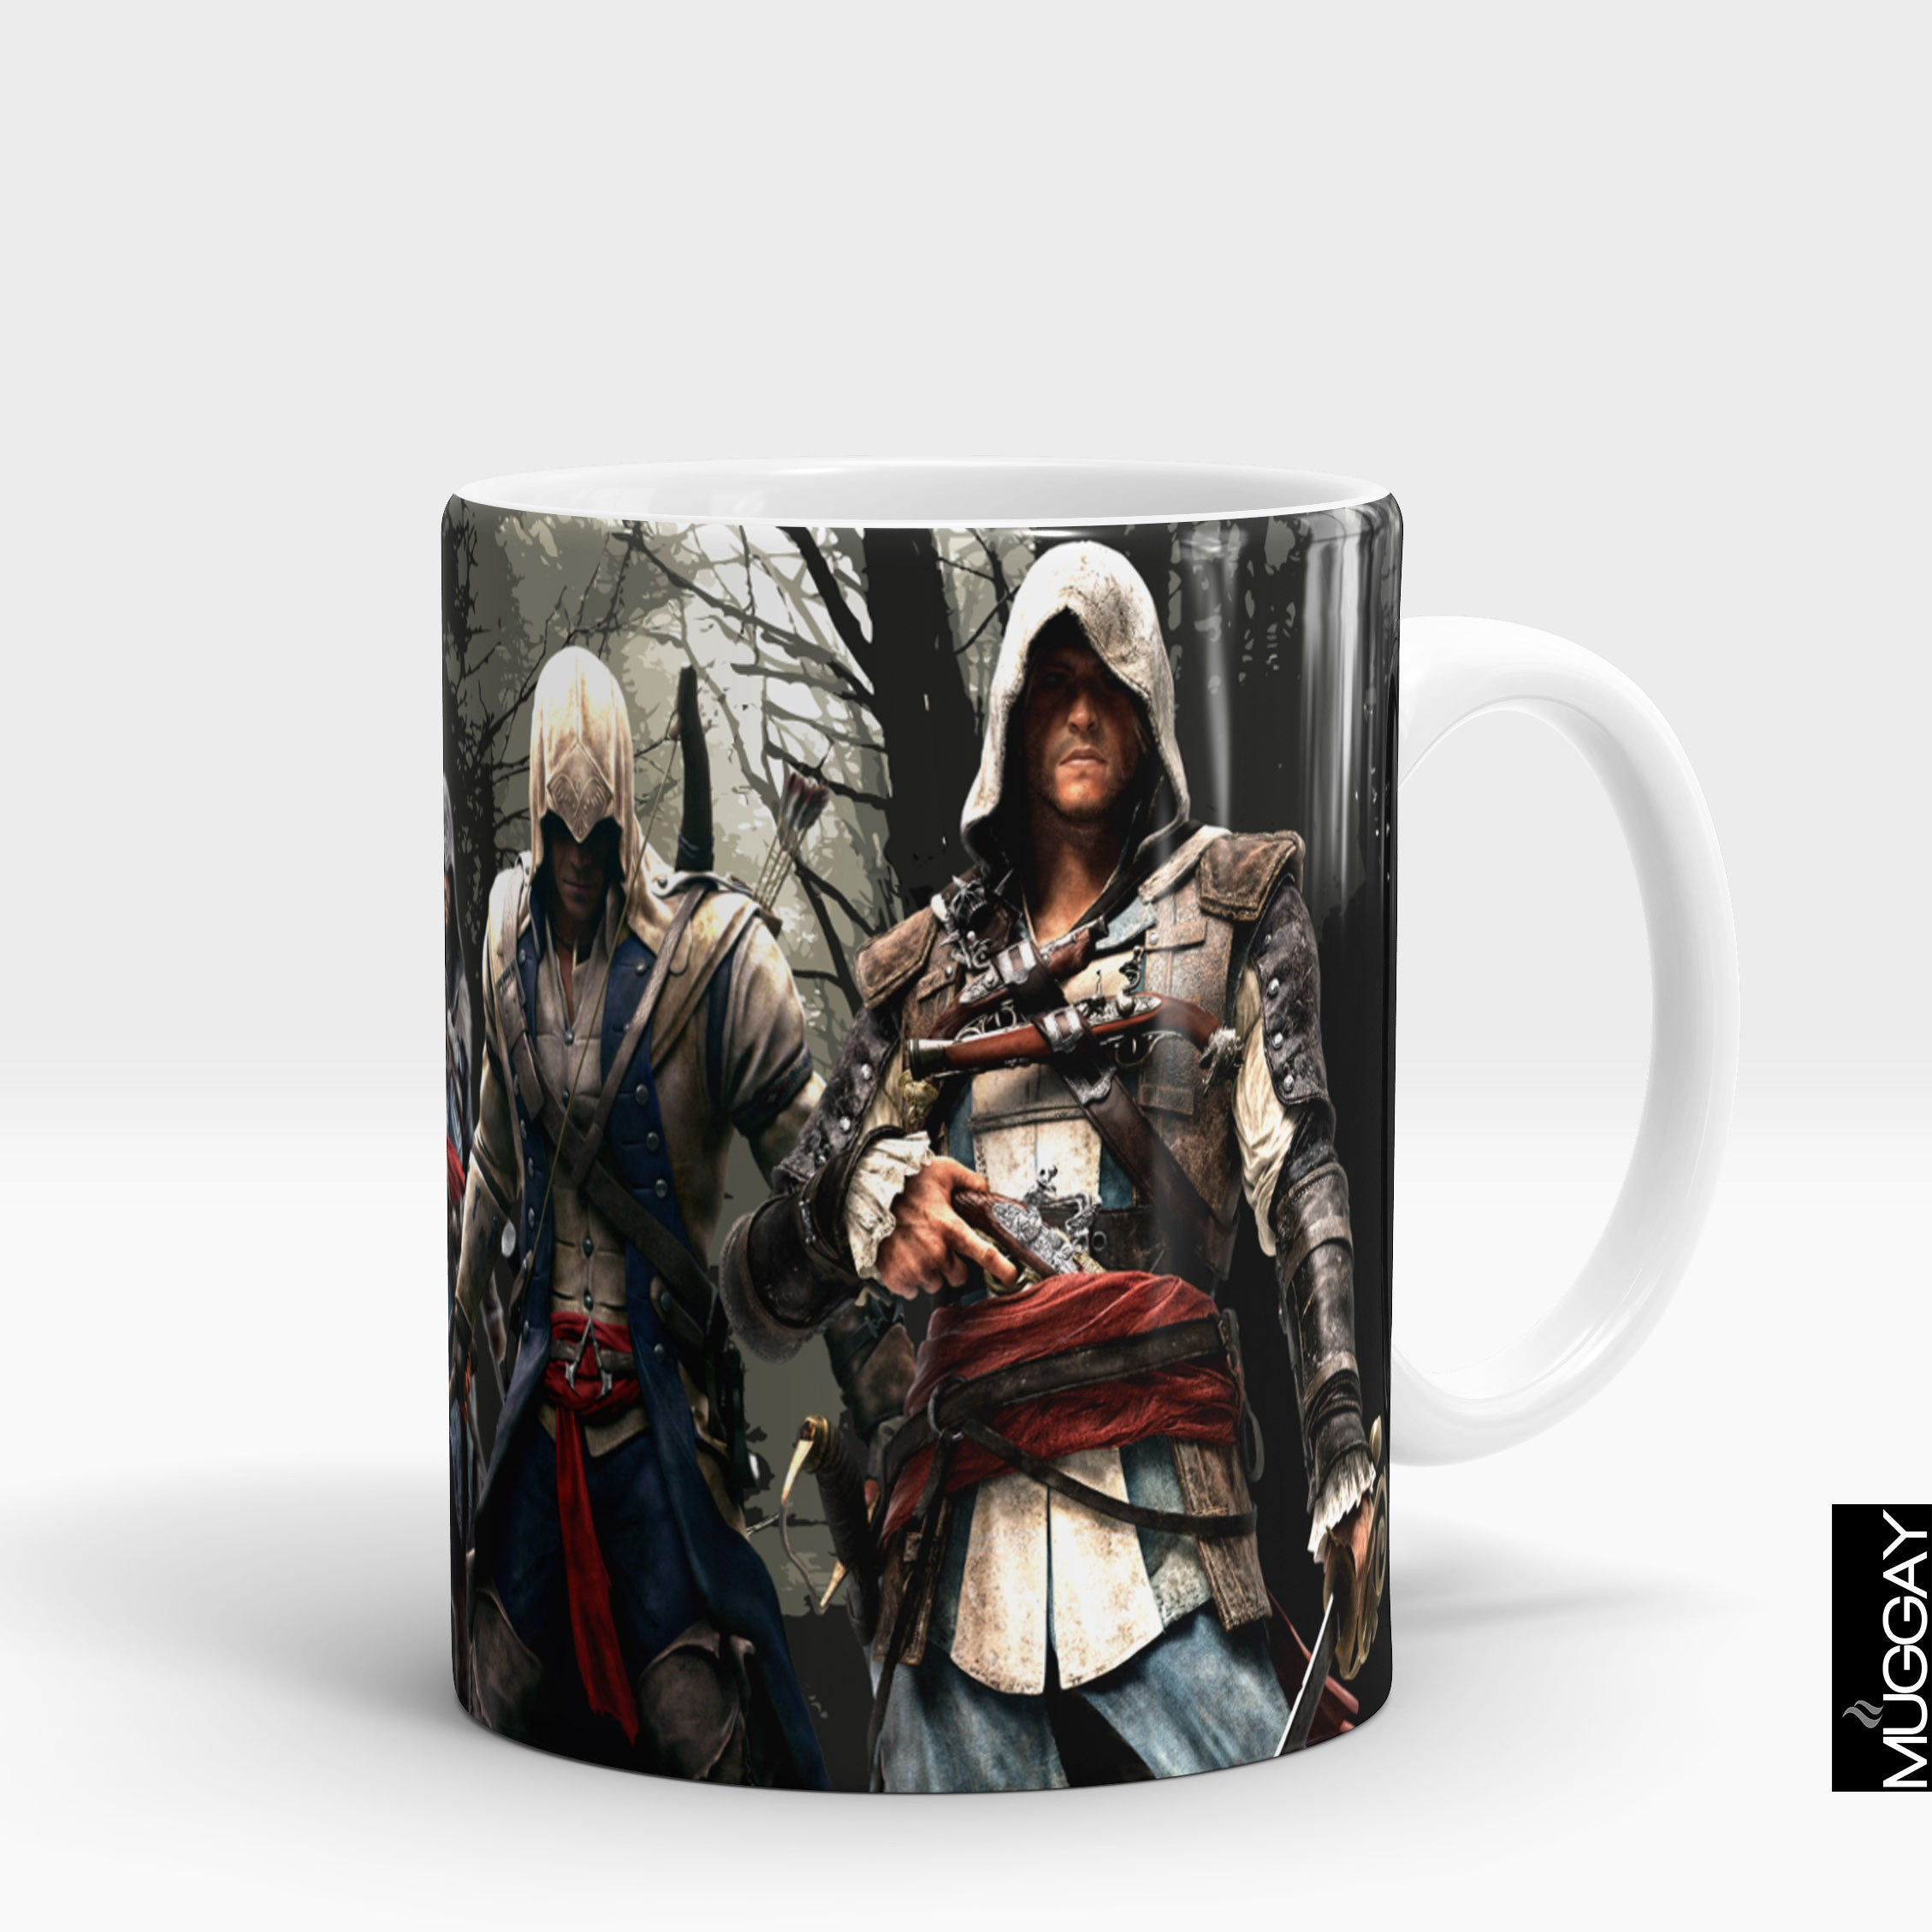 Assasins creed mugs - ac3 - Muggay.com - Mugs - Printing shop - truck Art mugs - Mug printing - Customized printing - Digital printing - Muggay